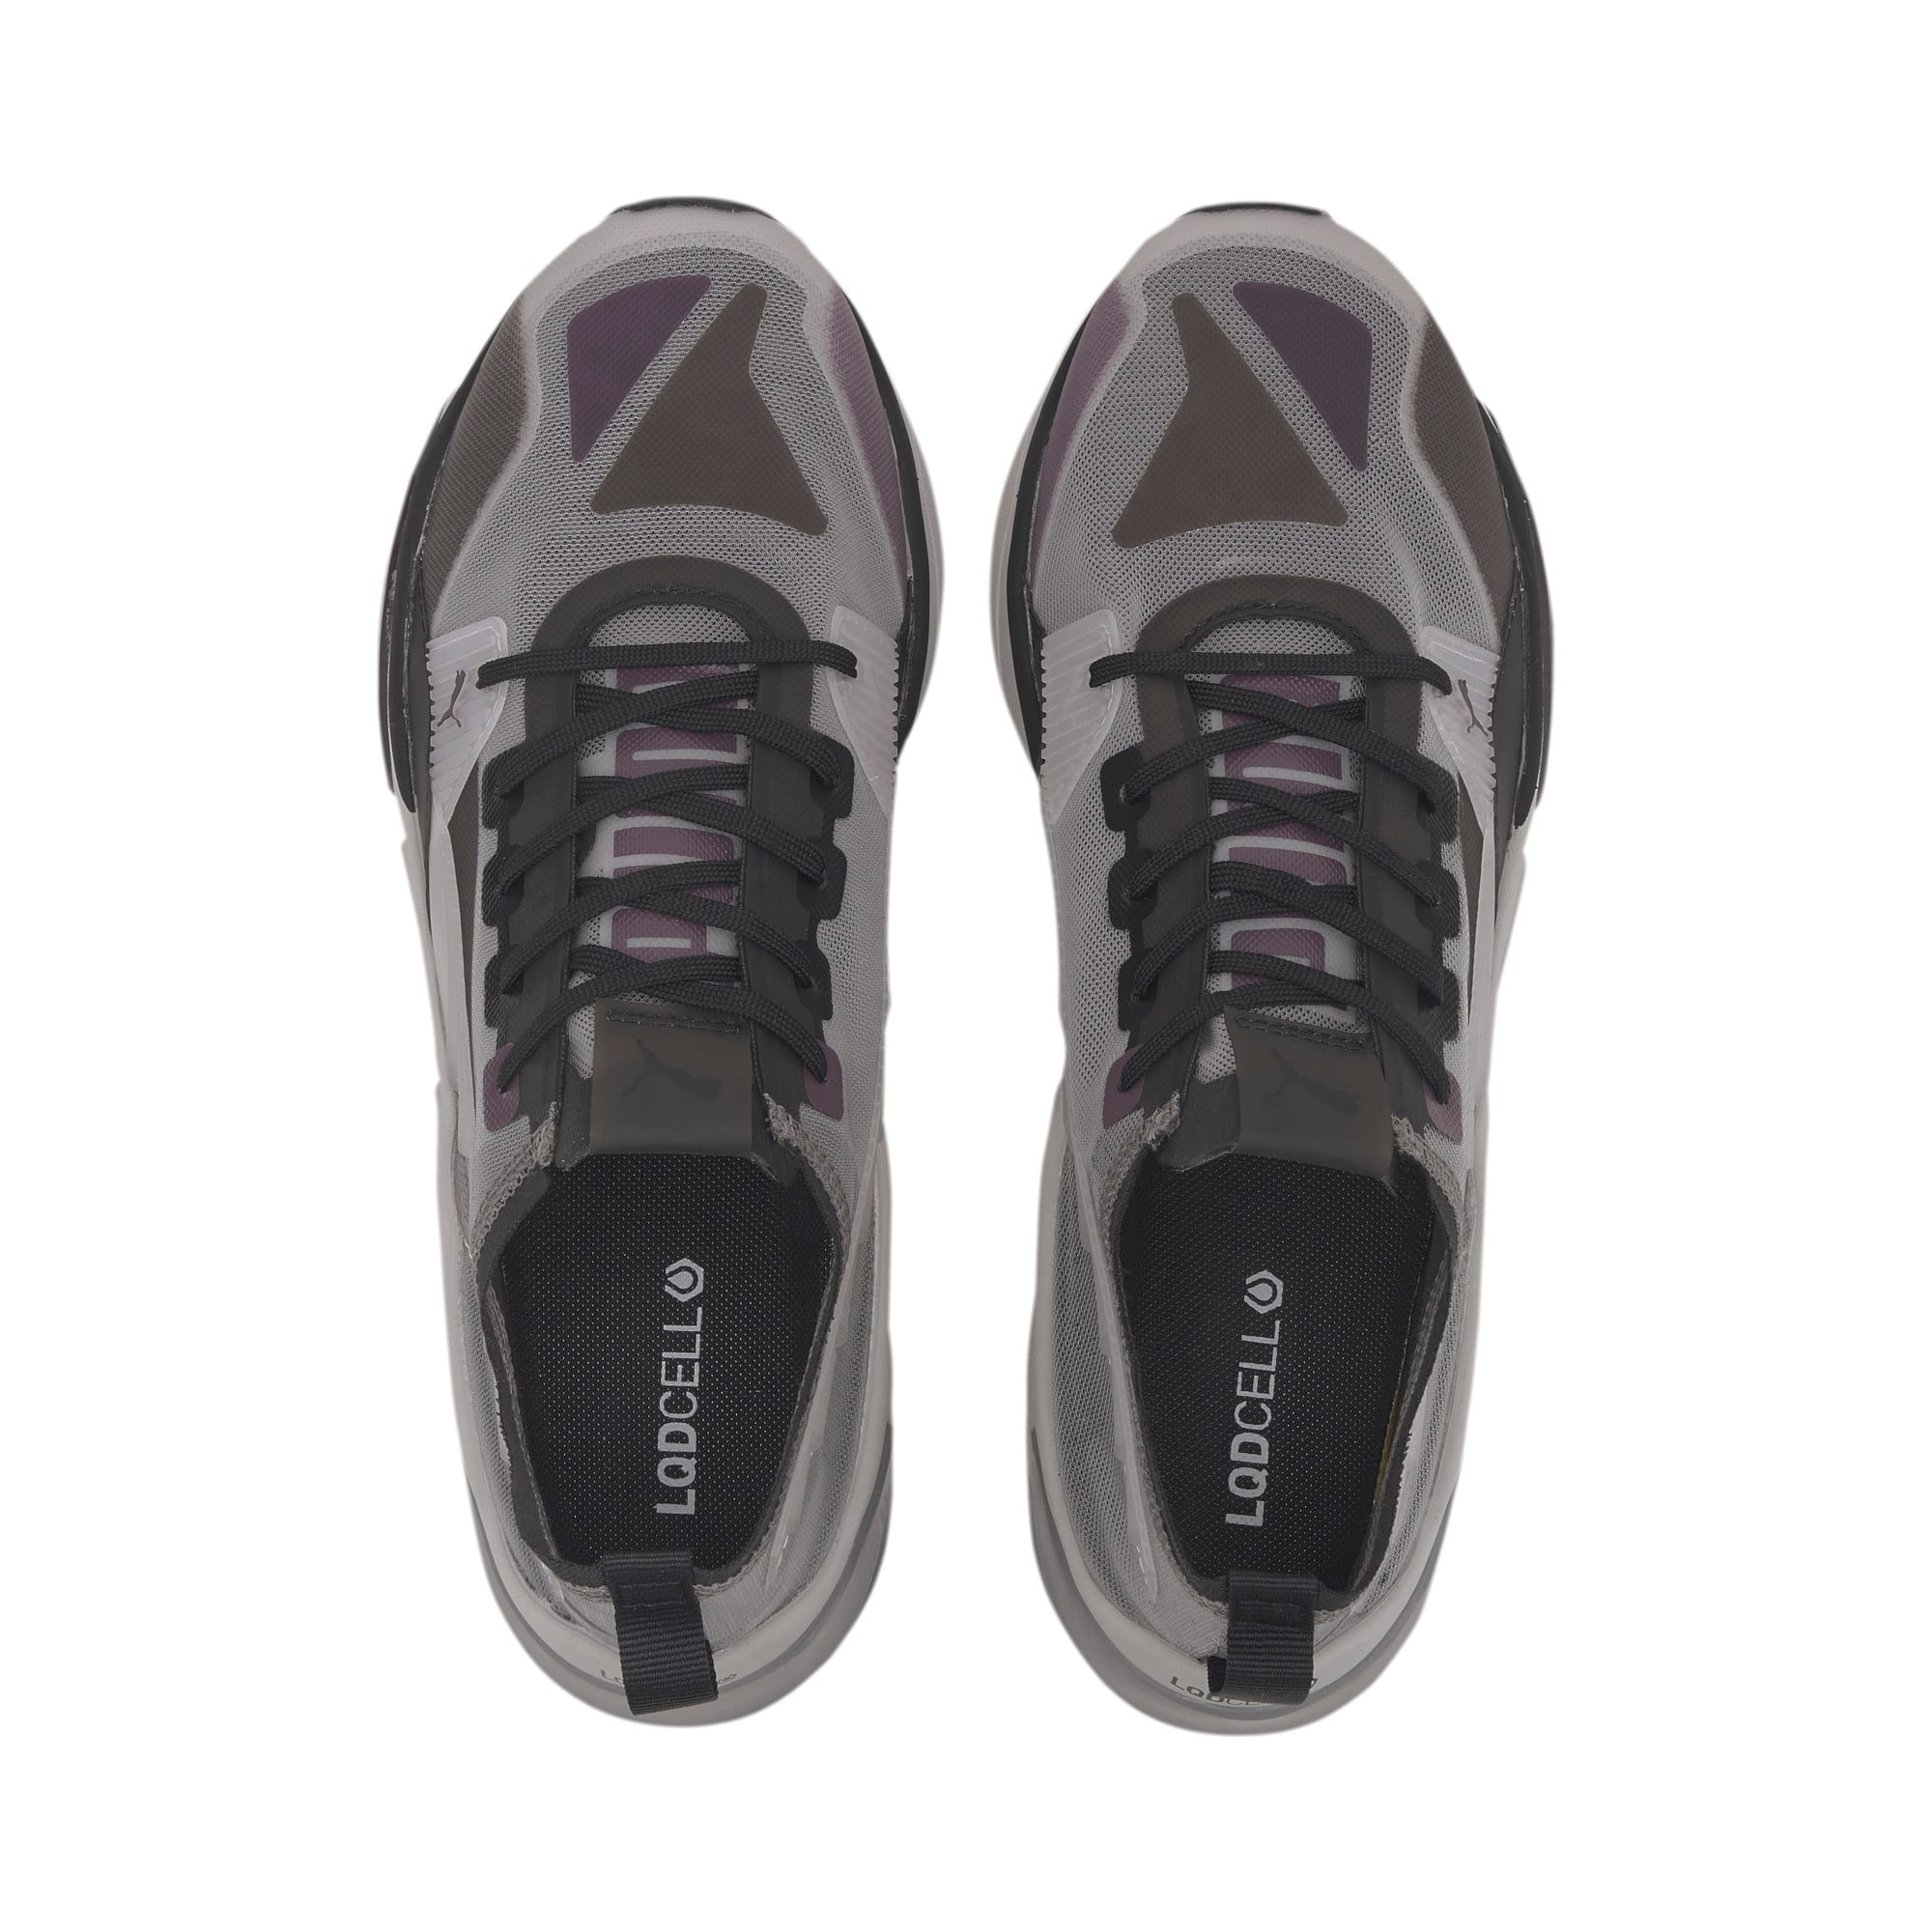 LQDCELL Optic Sheer Men's Training Shoes, Gray Violet-Puma Black, large